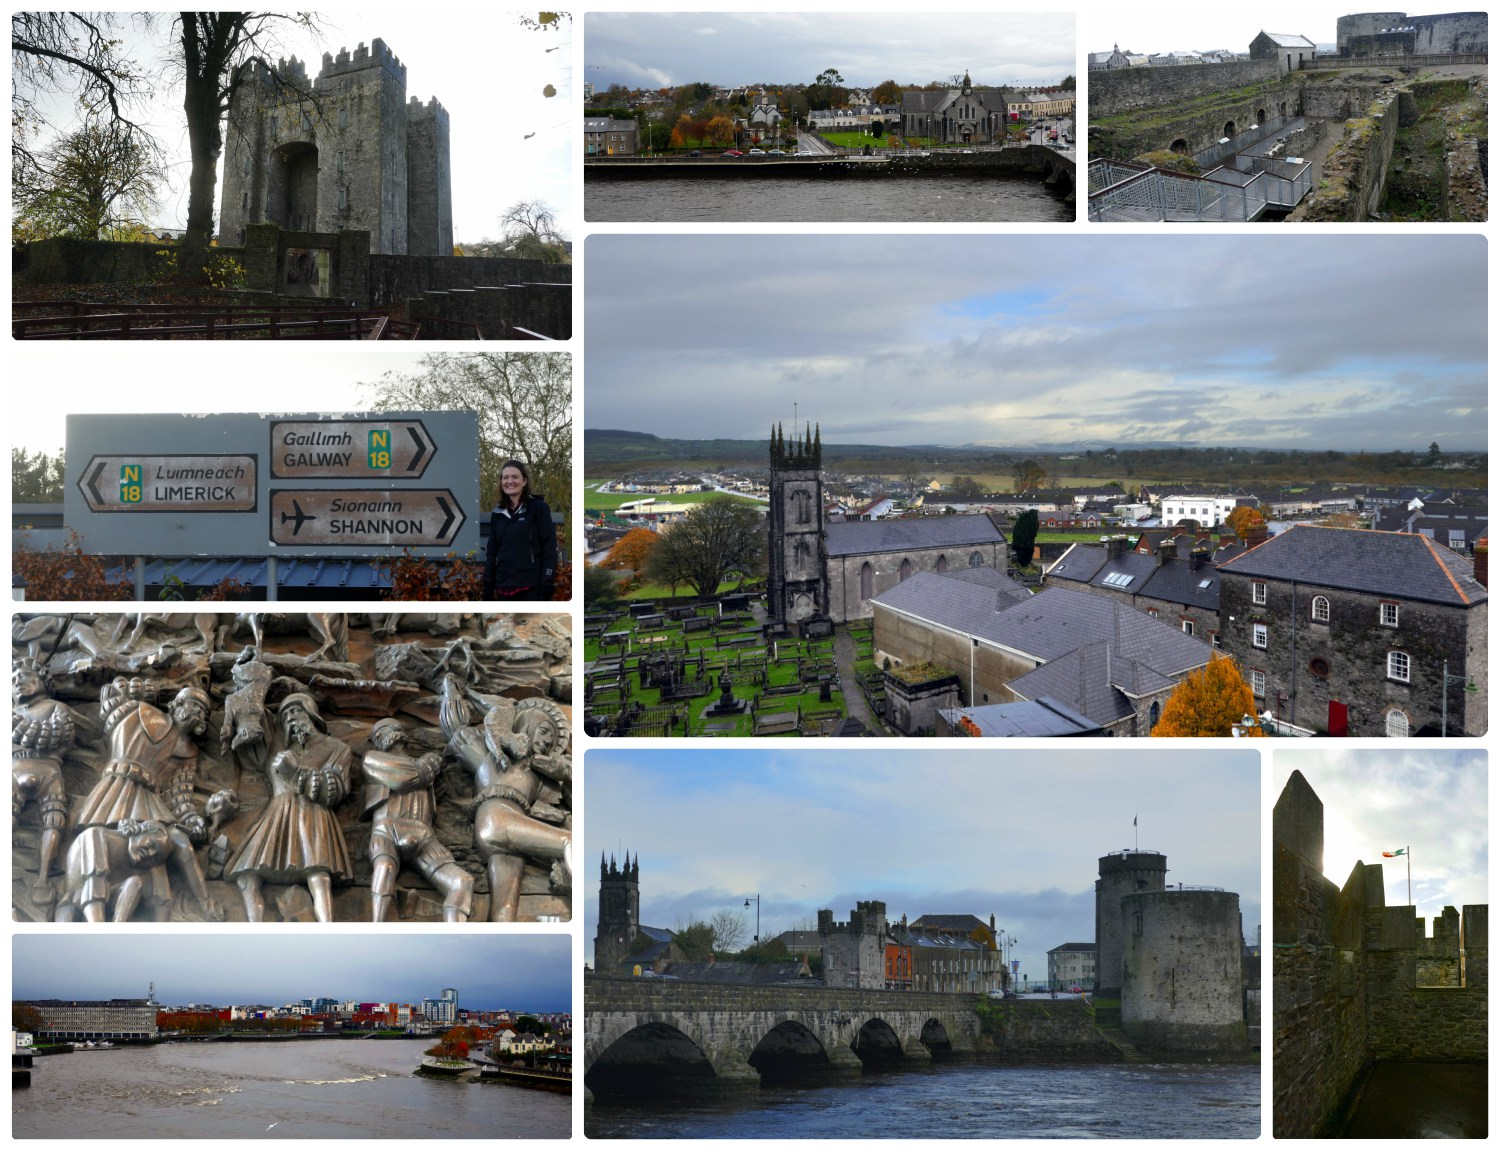 Bunratty Castle, Shannon ,and Limerick on our Ireland roadtrip!